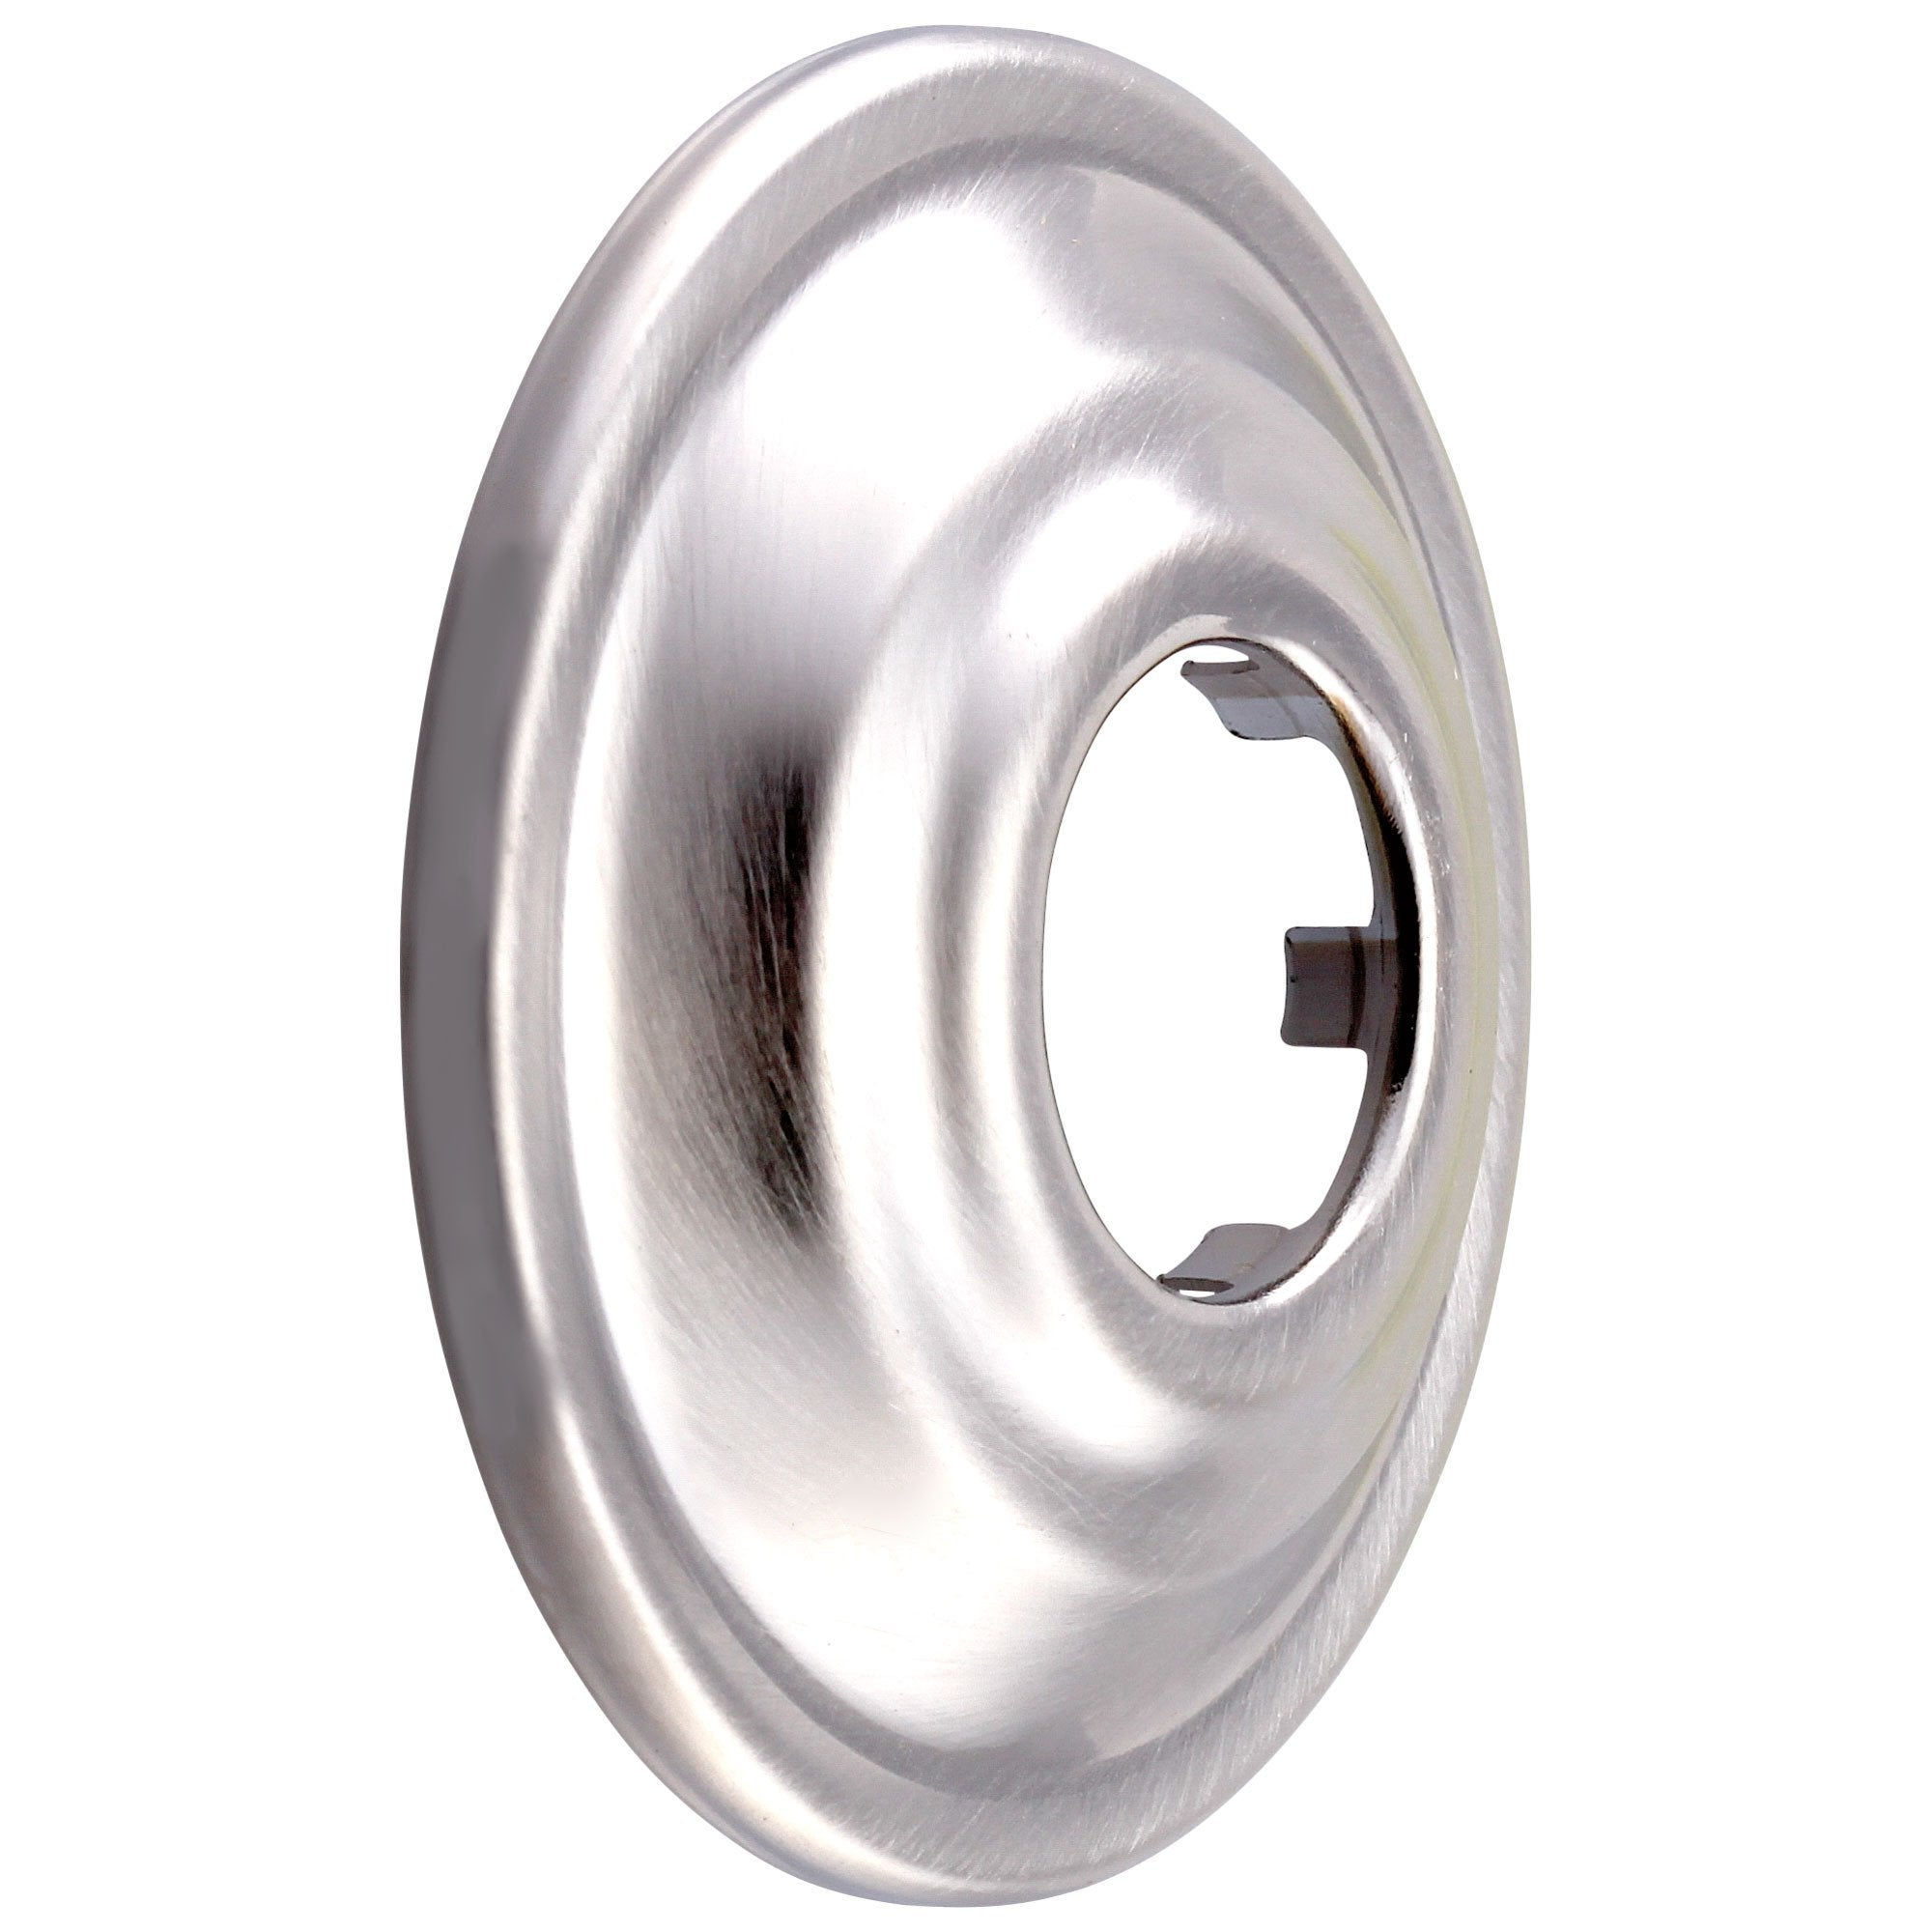 Delta Stainless Steel Finish Standard Round Shower Arm Flange DRP38452SS